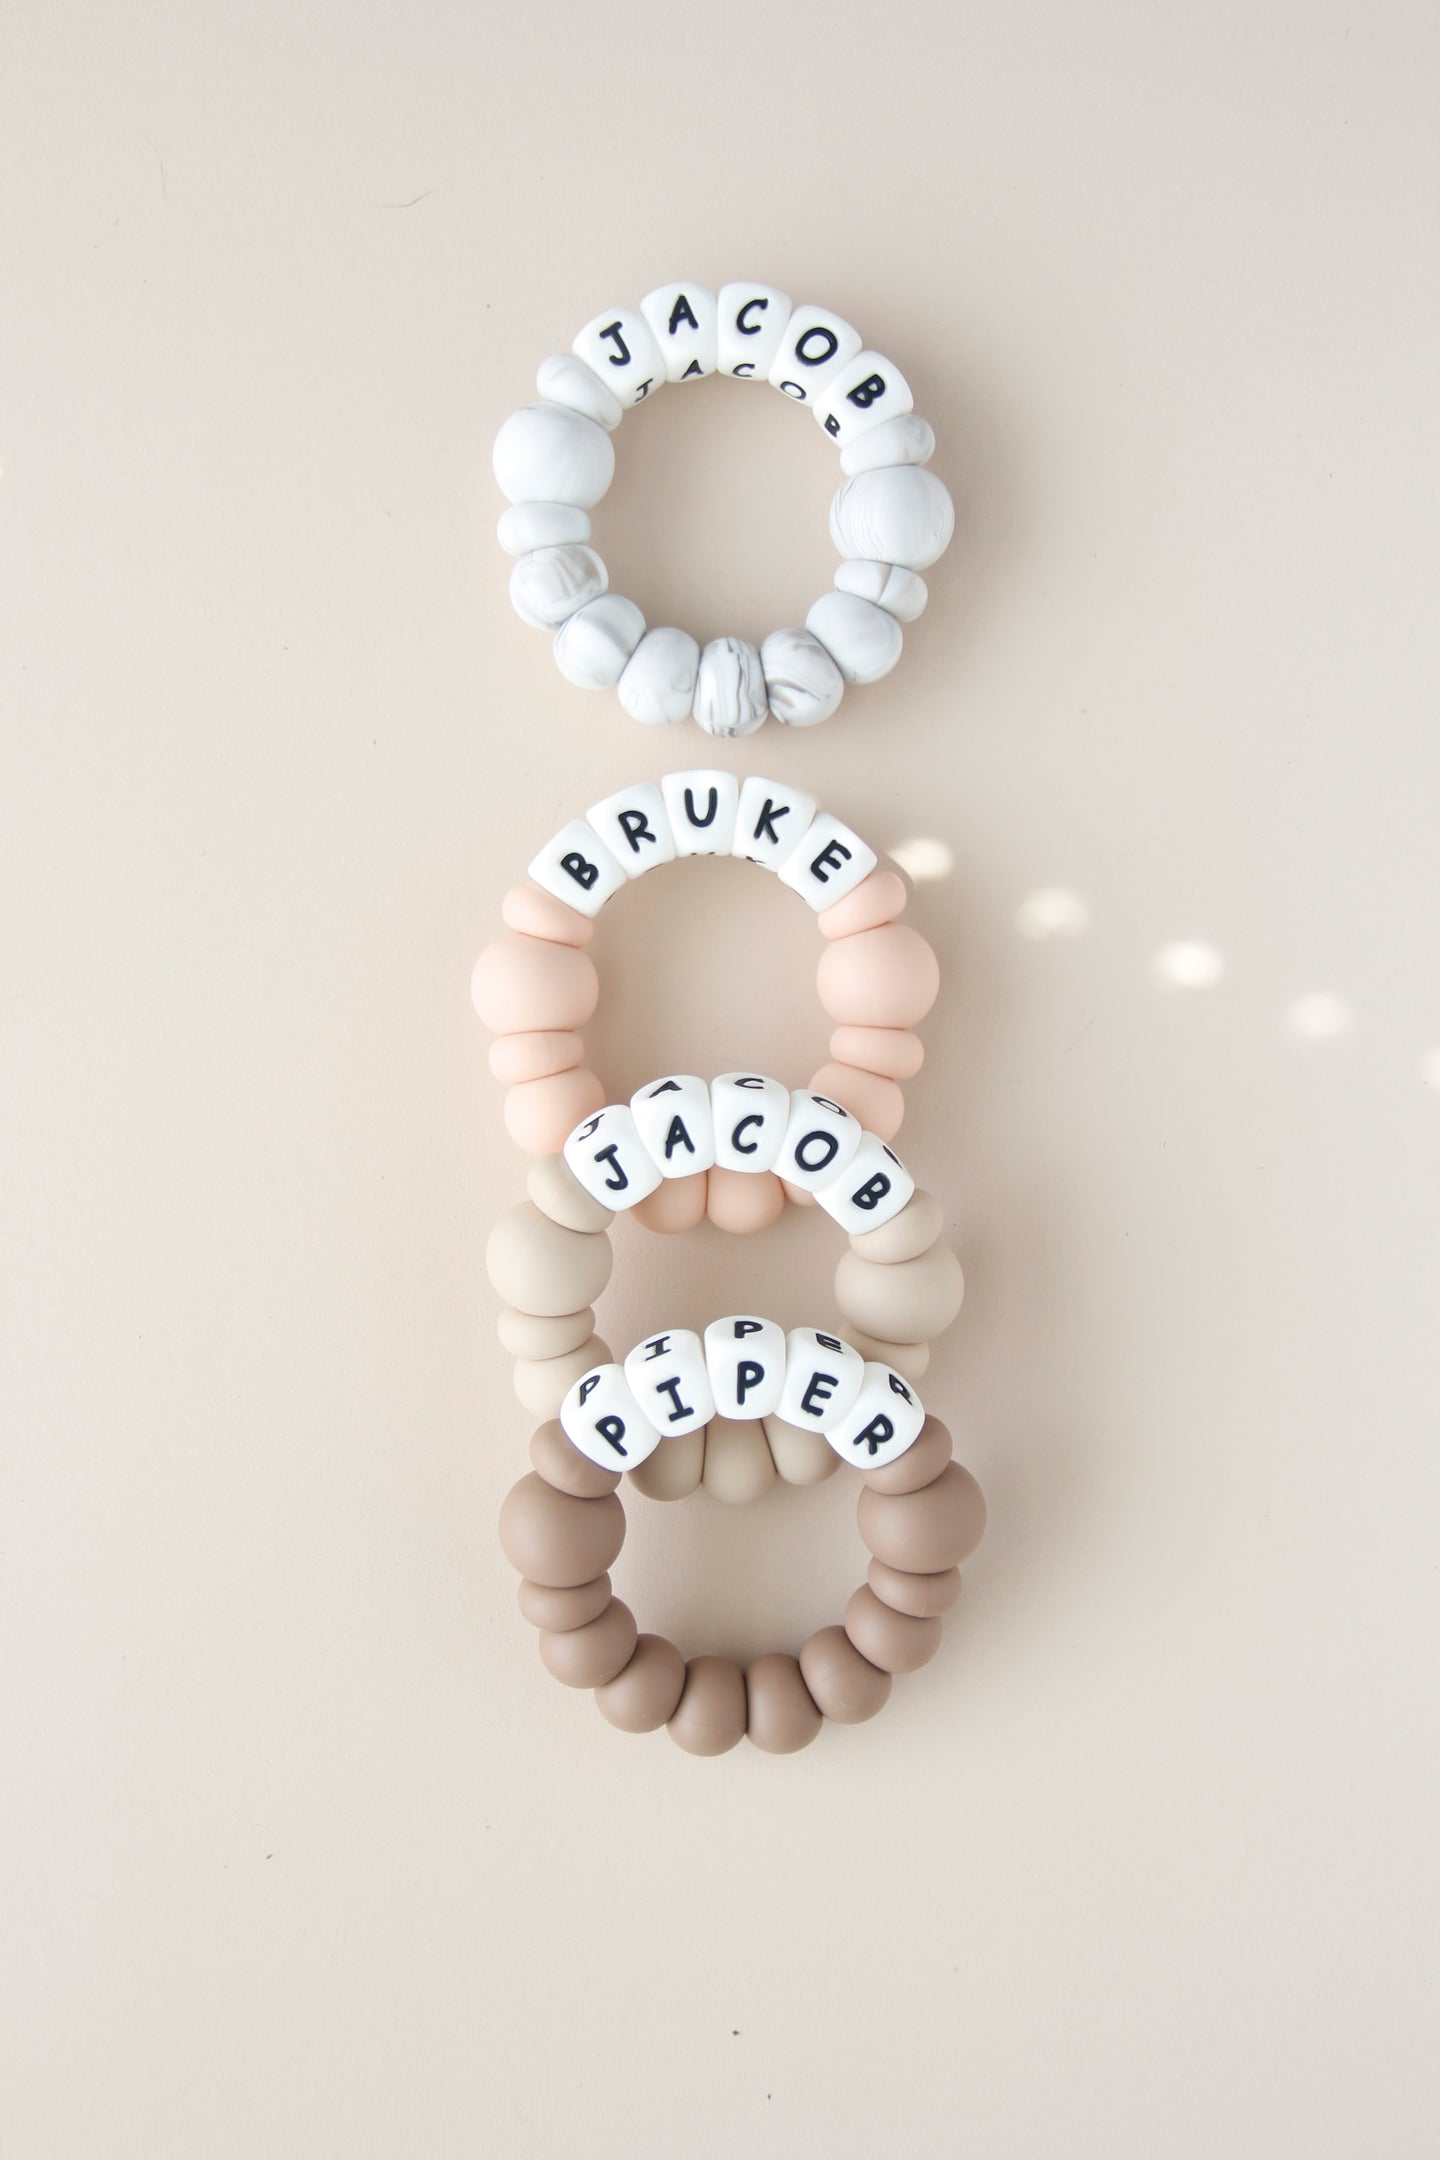 Personalized Silicone Teething Toy - Niblle